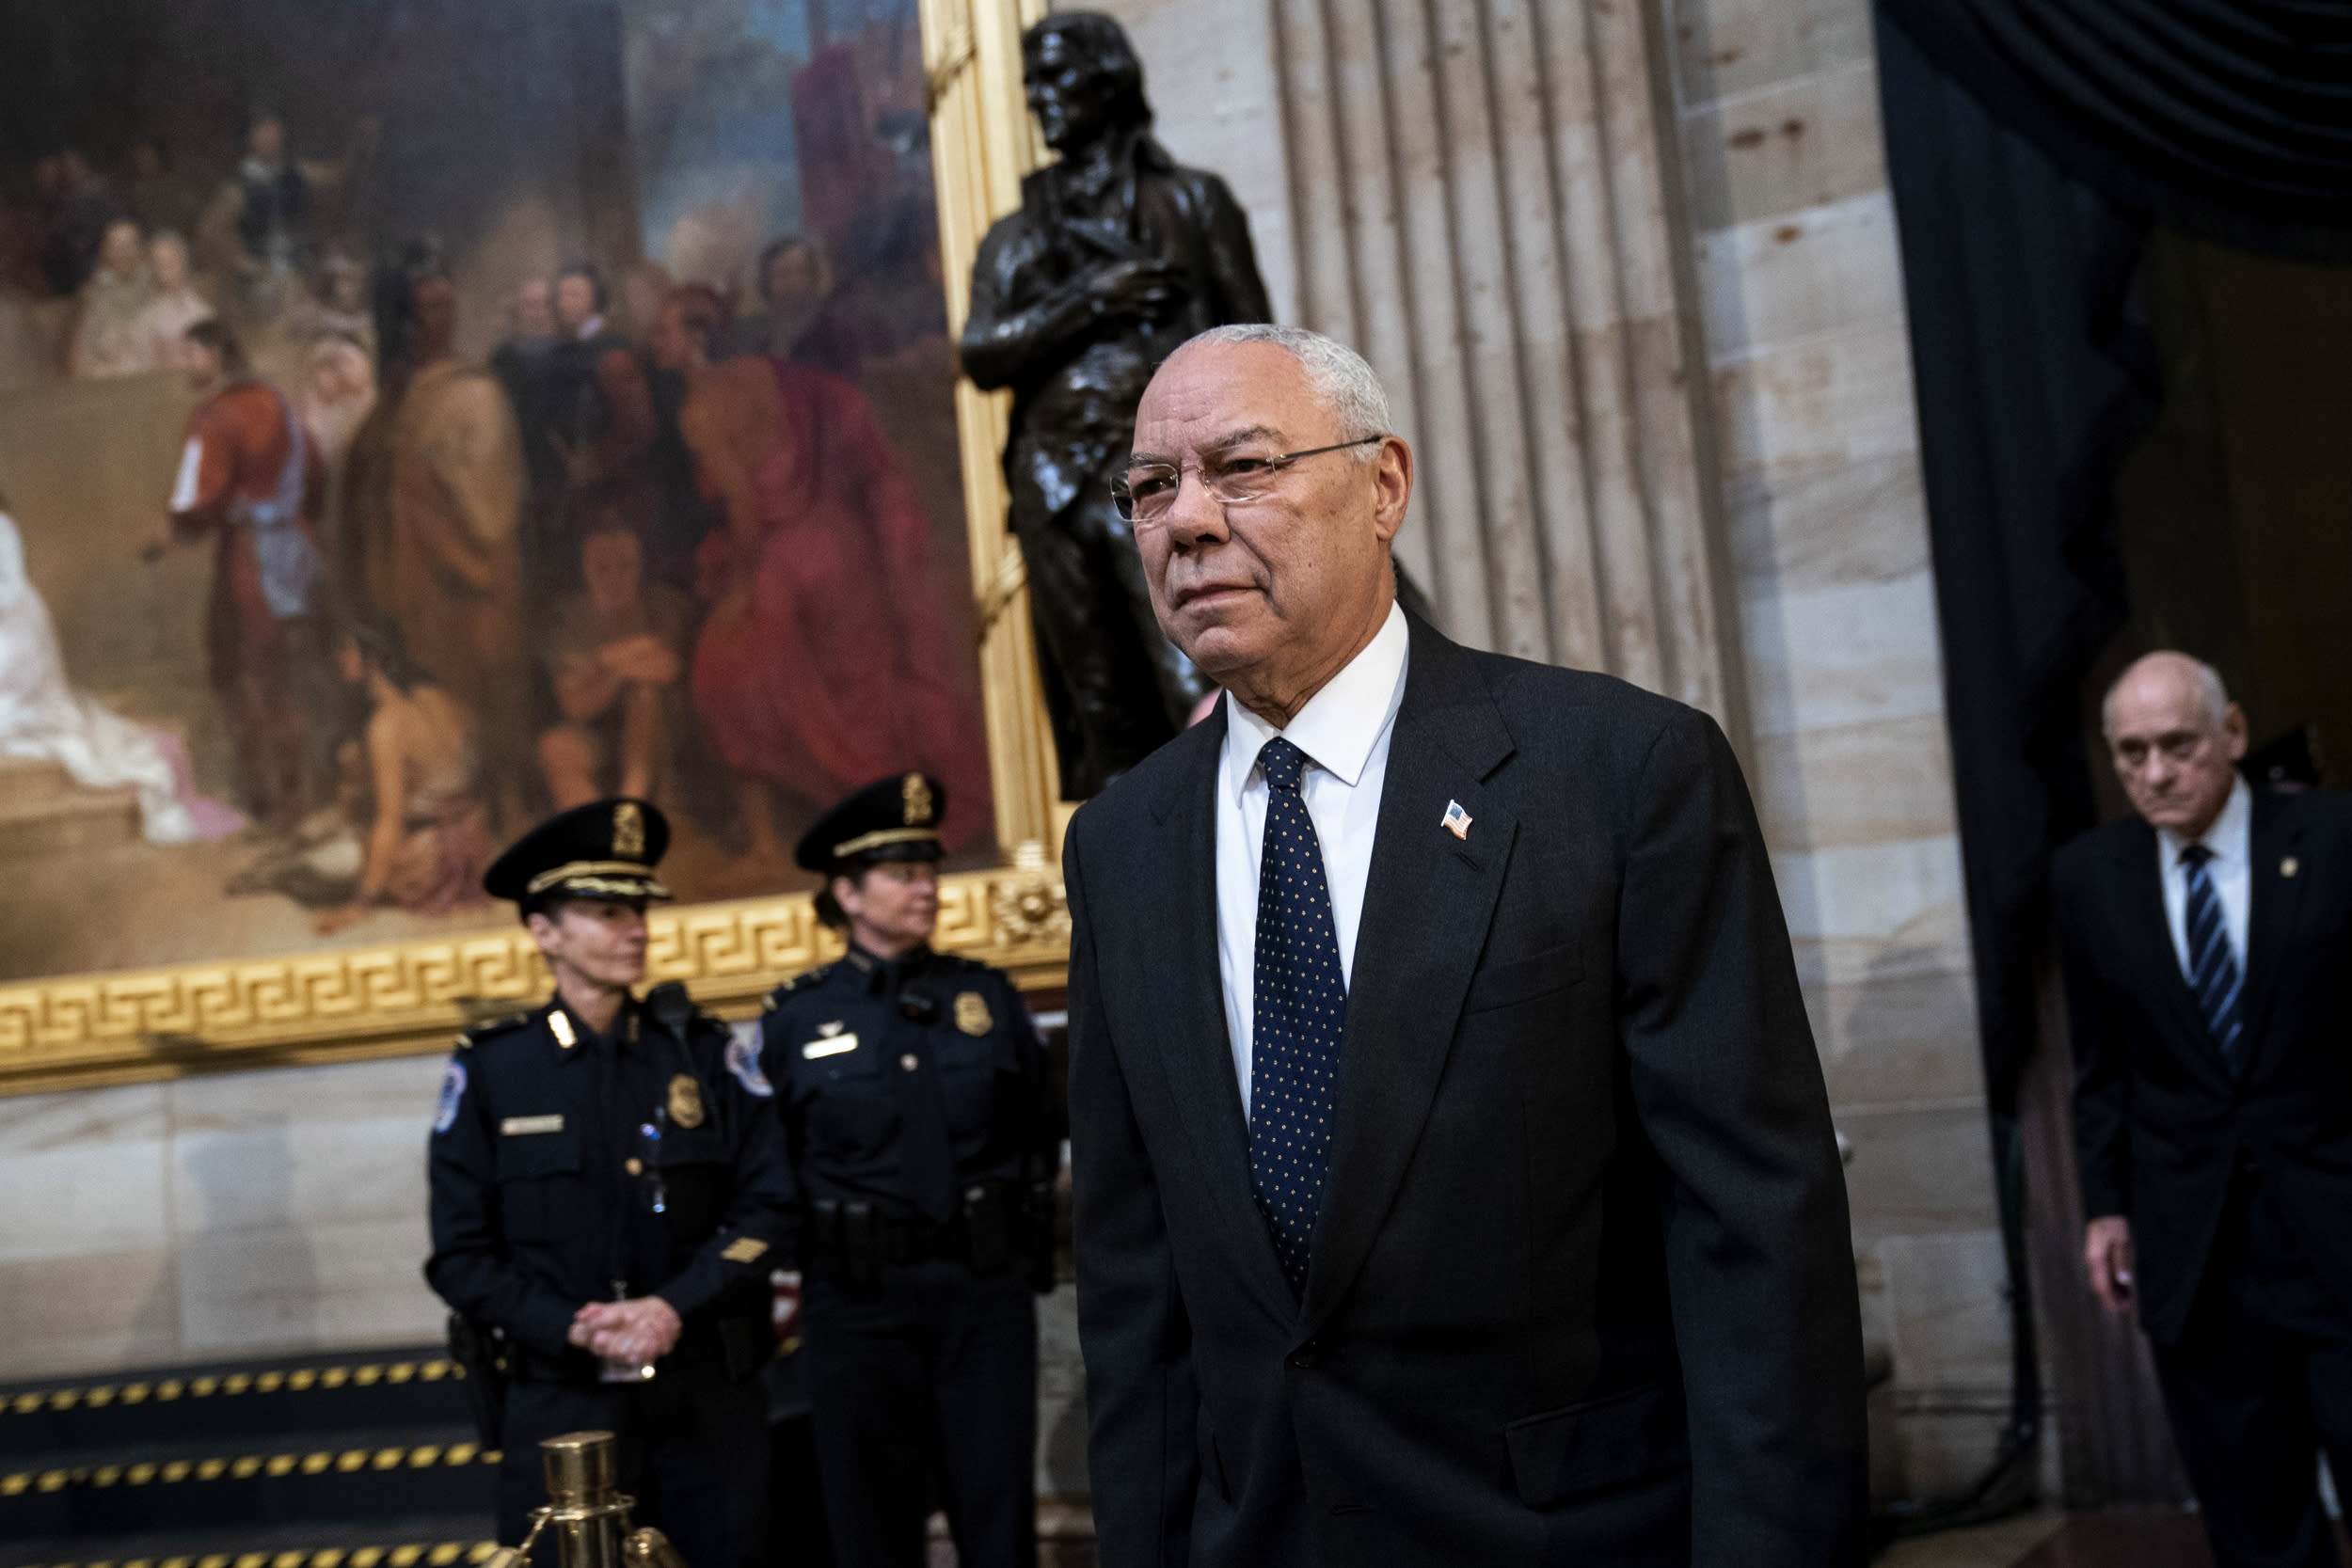 Colin Powell calls Trump a liar, says he skirts the Constitution, will vote Biden